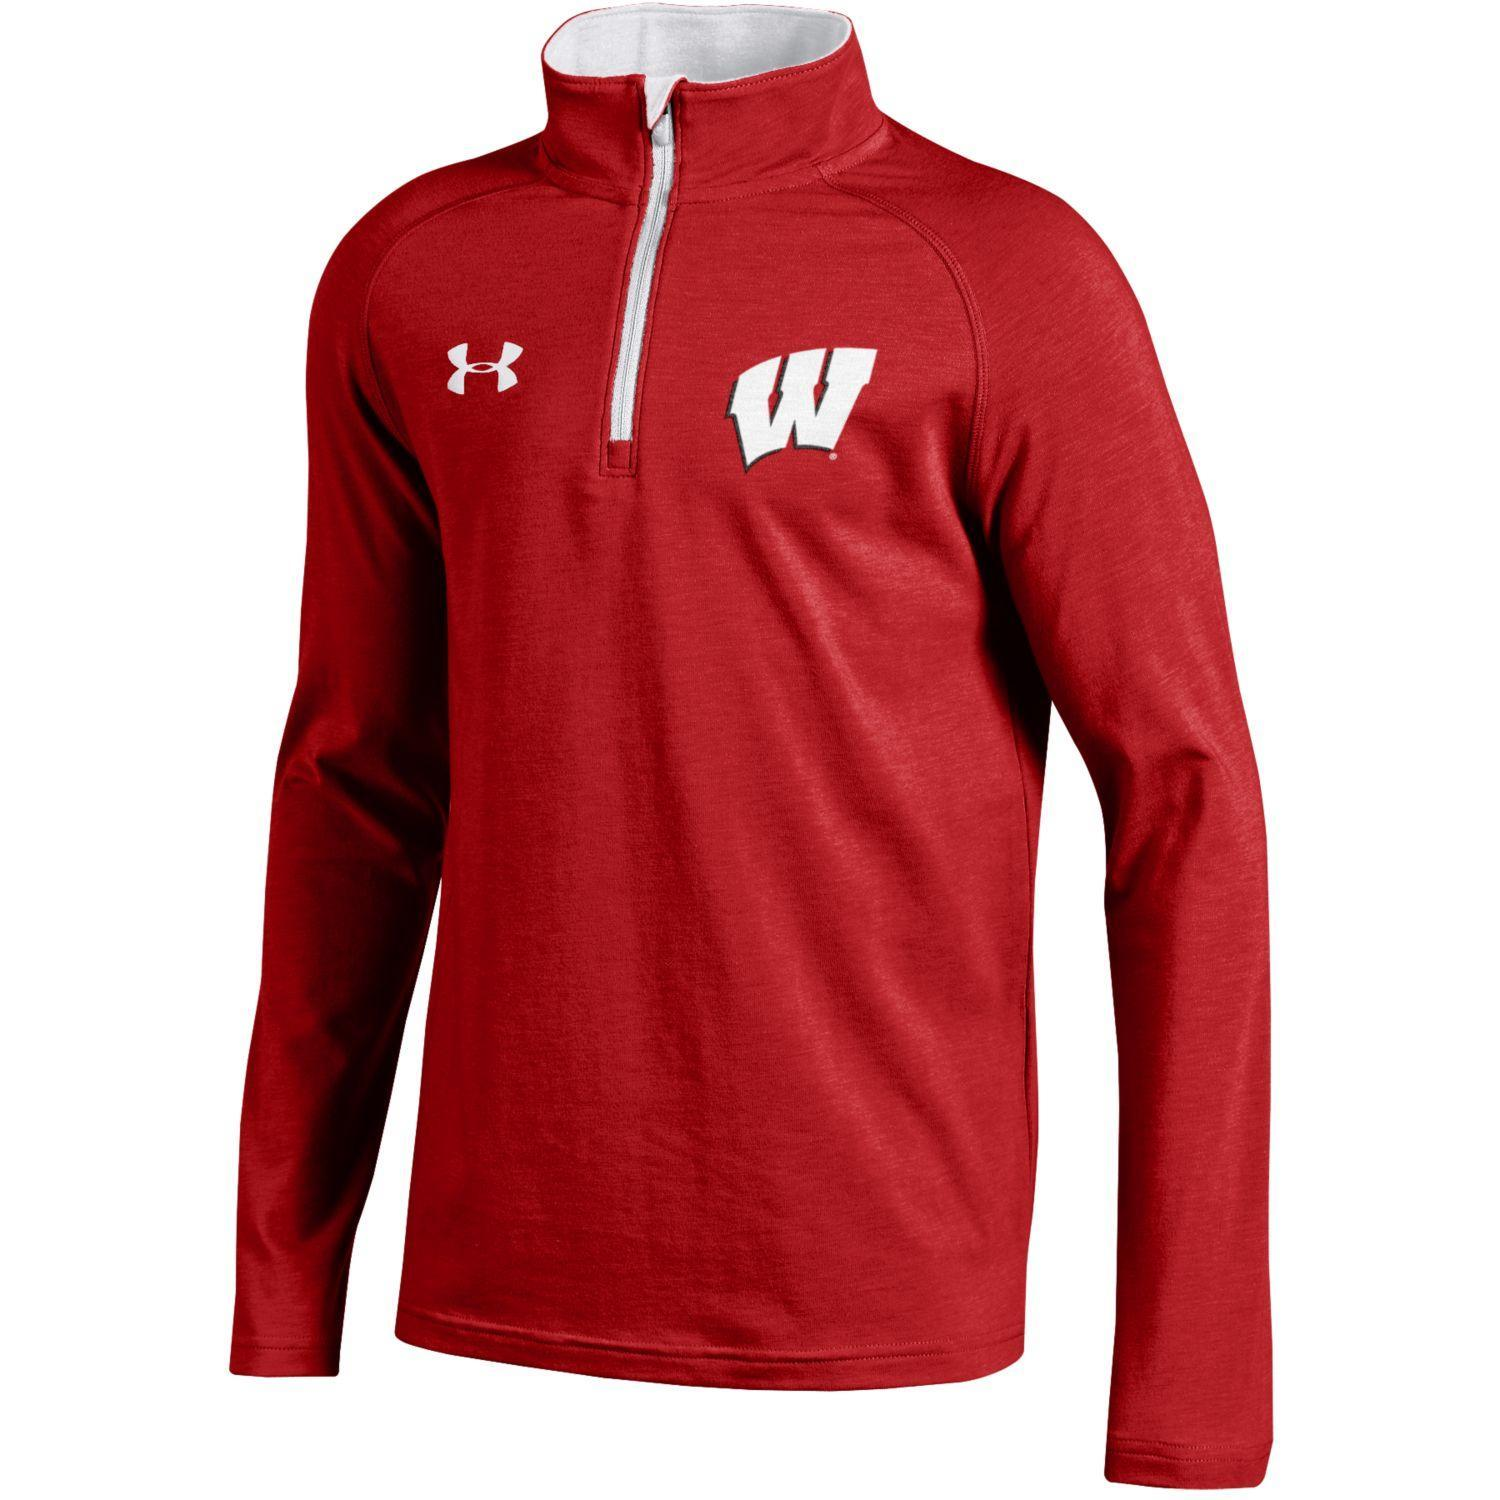 30db4ace Wisconsin Badgers Under Armour YOUTH Red Lightweight Loose 1/4 Zip Pullover